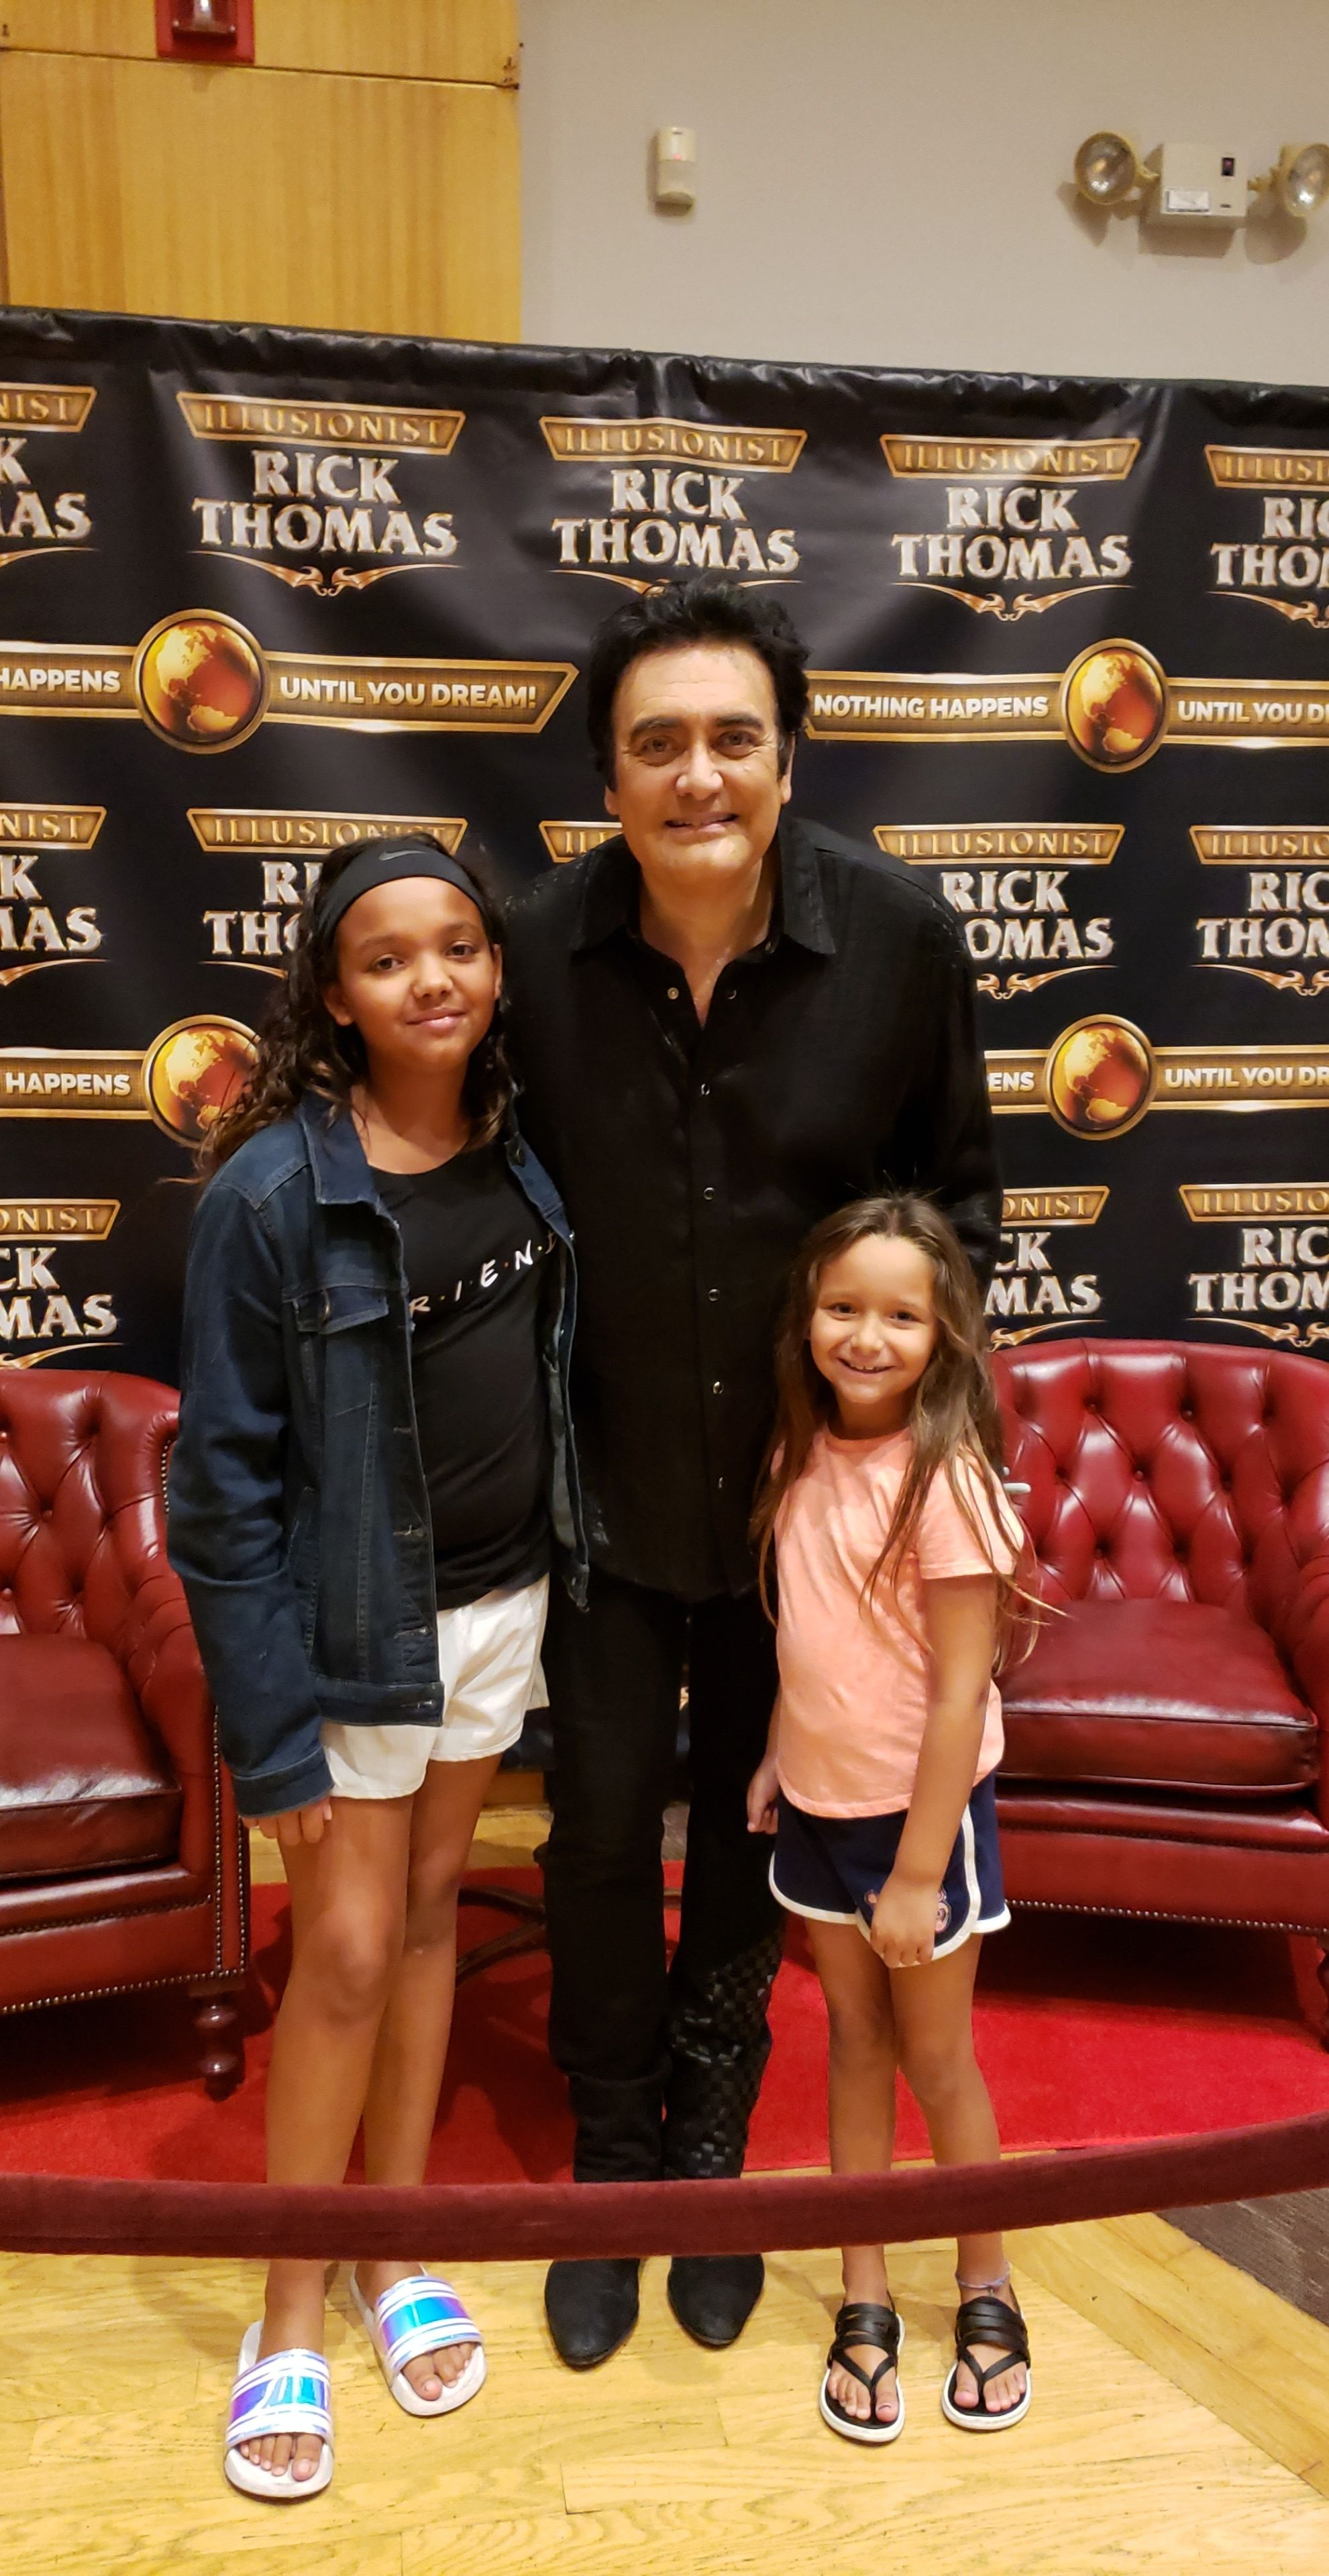 Picture with Rick Thomas at Rick Thomas Illusionist and Magic Show